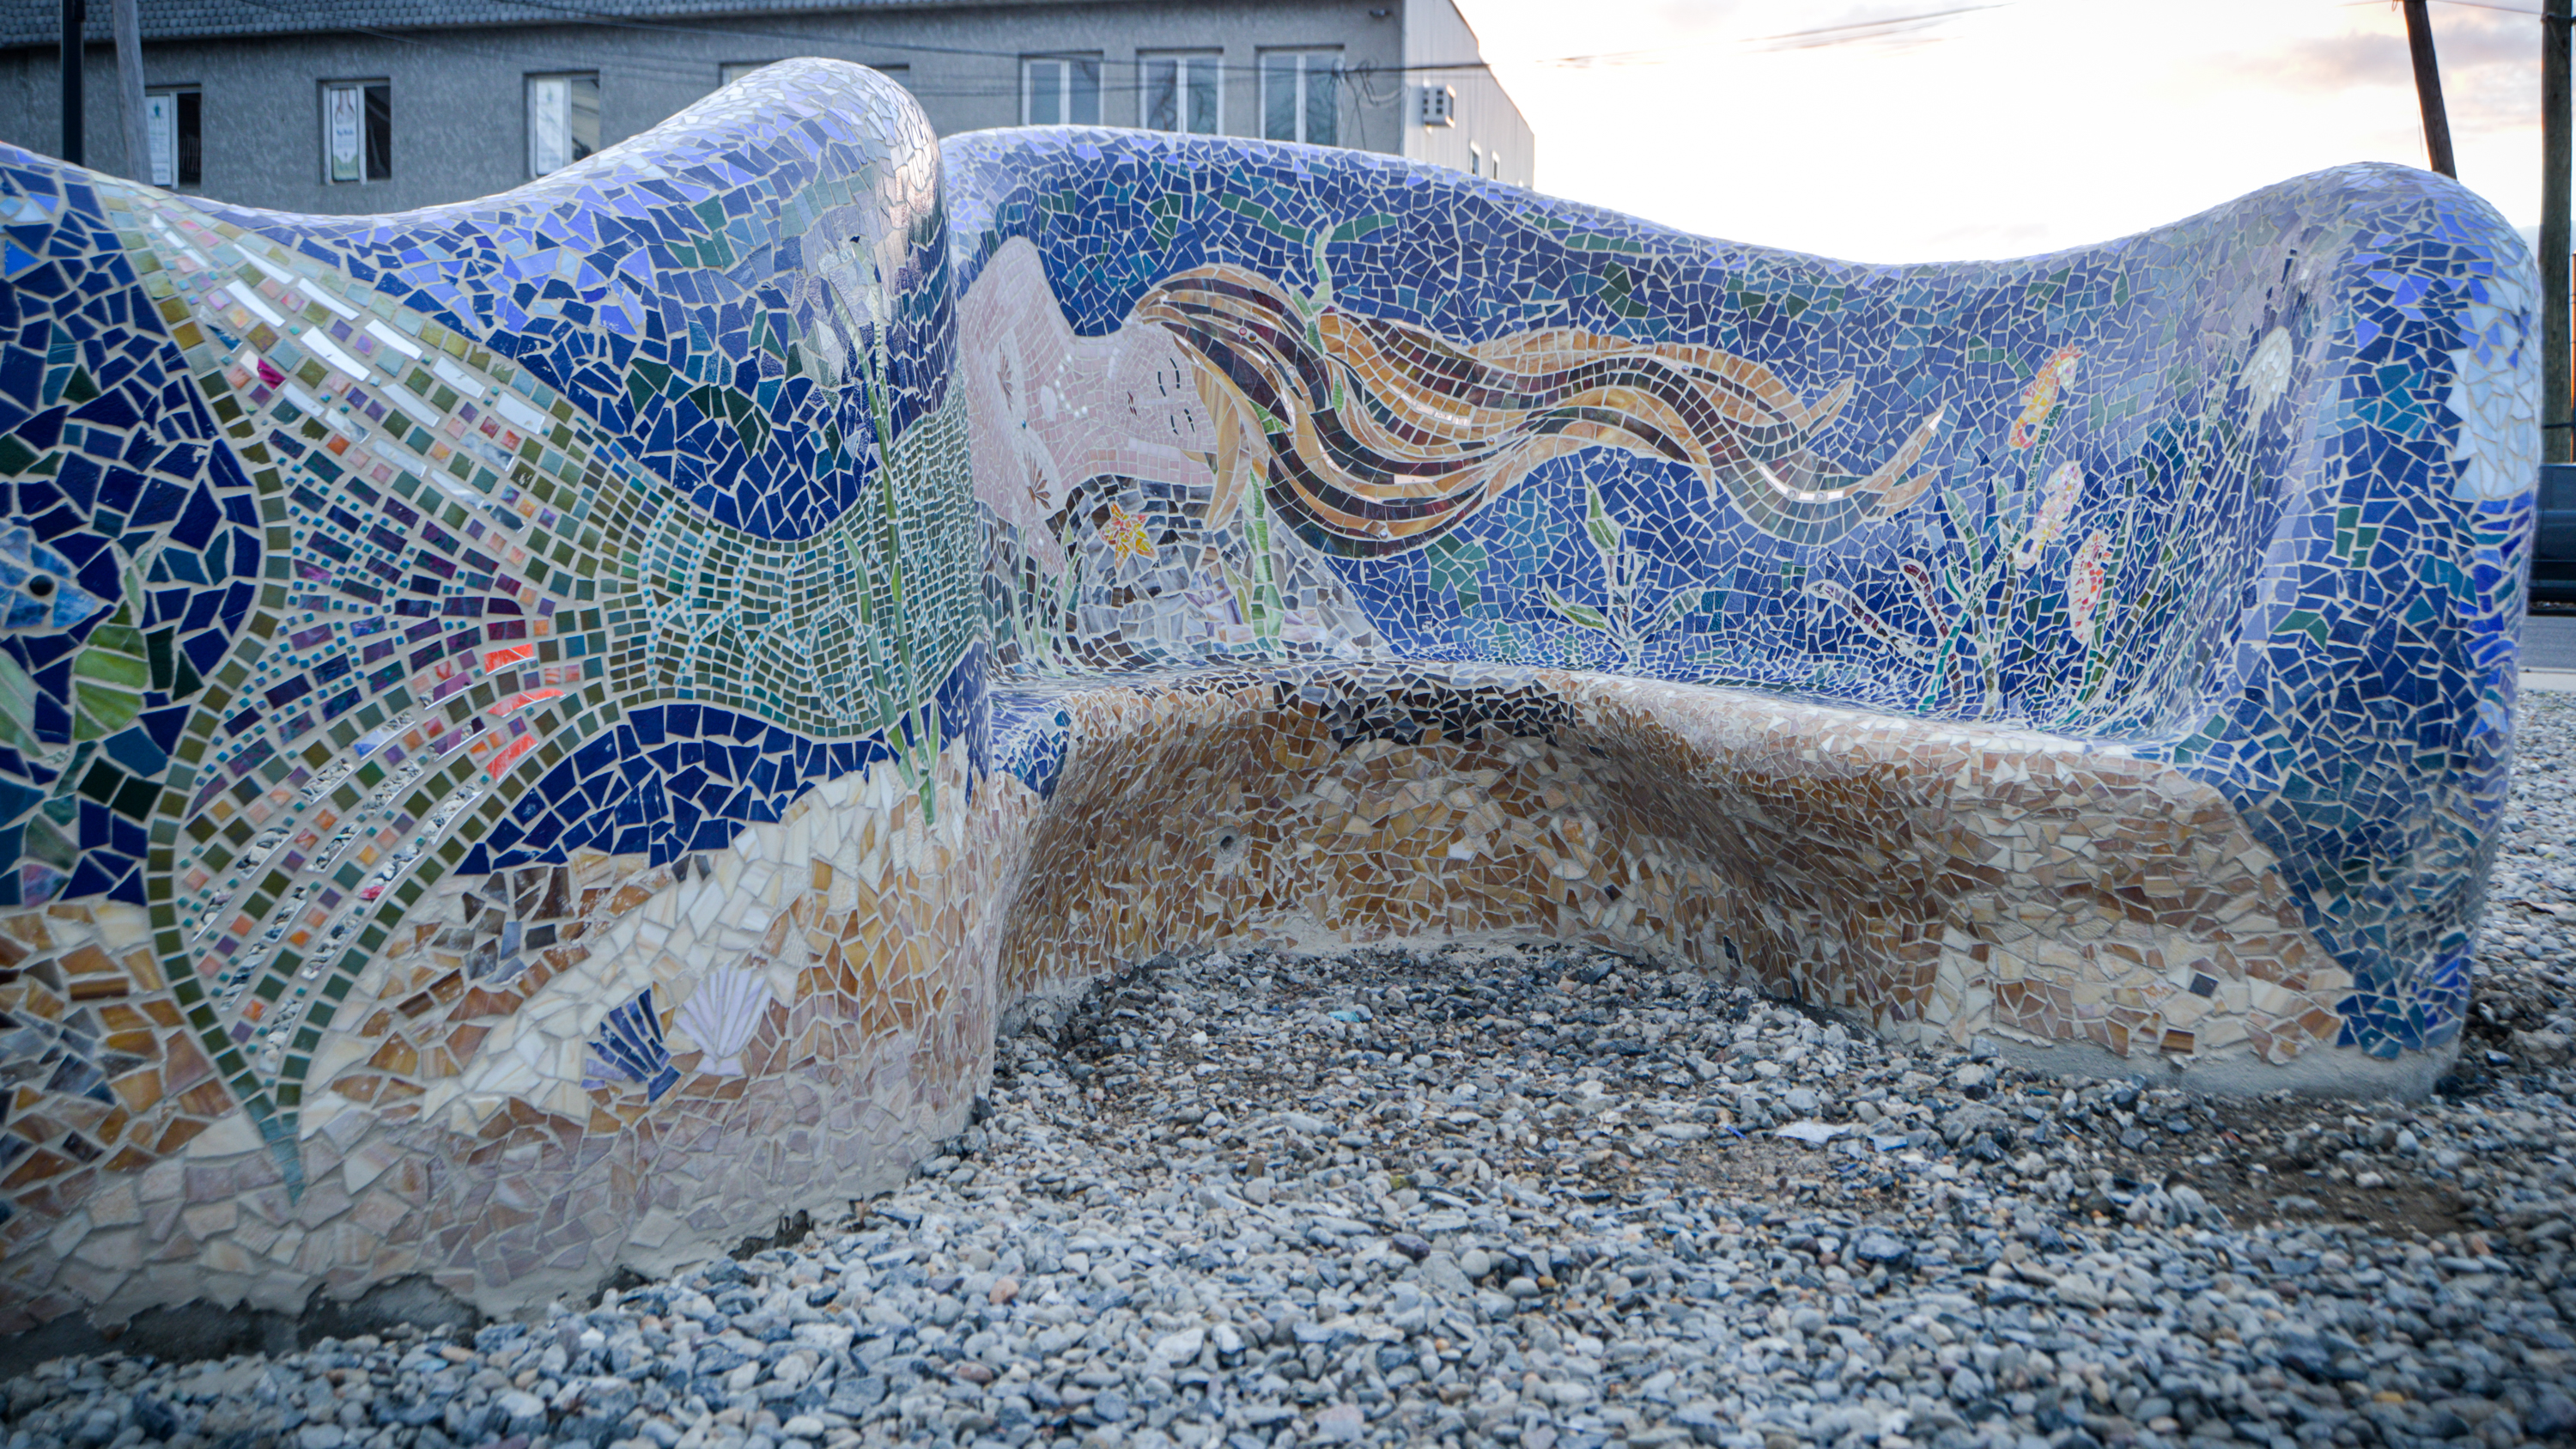 Free form bench sculptures located at the Keyport boat ramp area off Broad St.